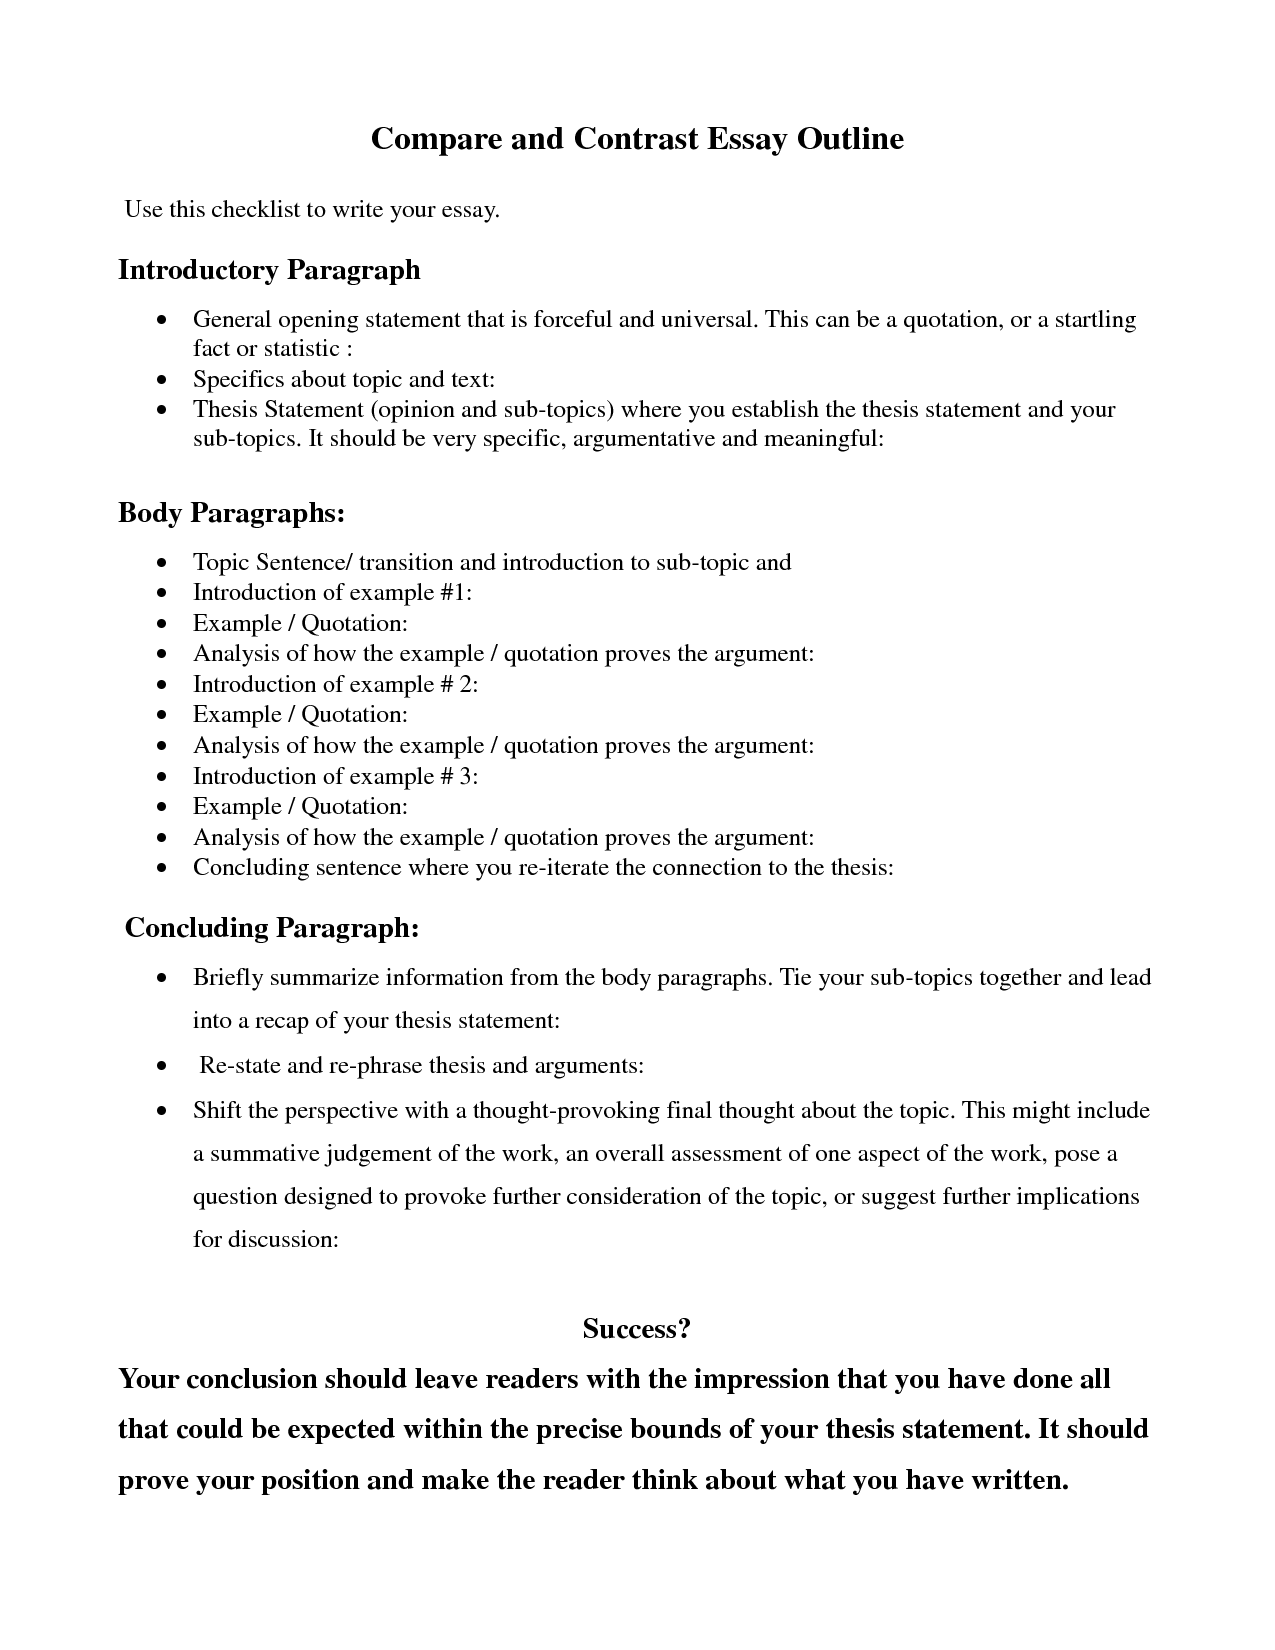 how to write a compare and contrast essays These compare and contrast essay topics provide teachers and students with great and fun ideas for home and class work how to teach students to organize and write compare-contrast essays learn how to compare and contrast ideas and events in english.